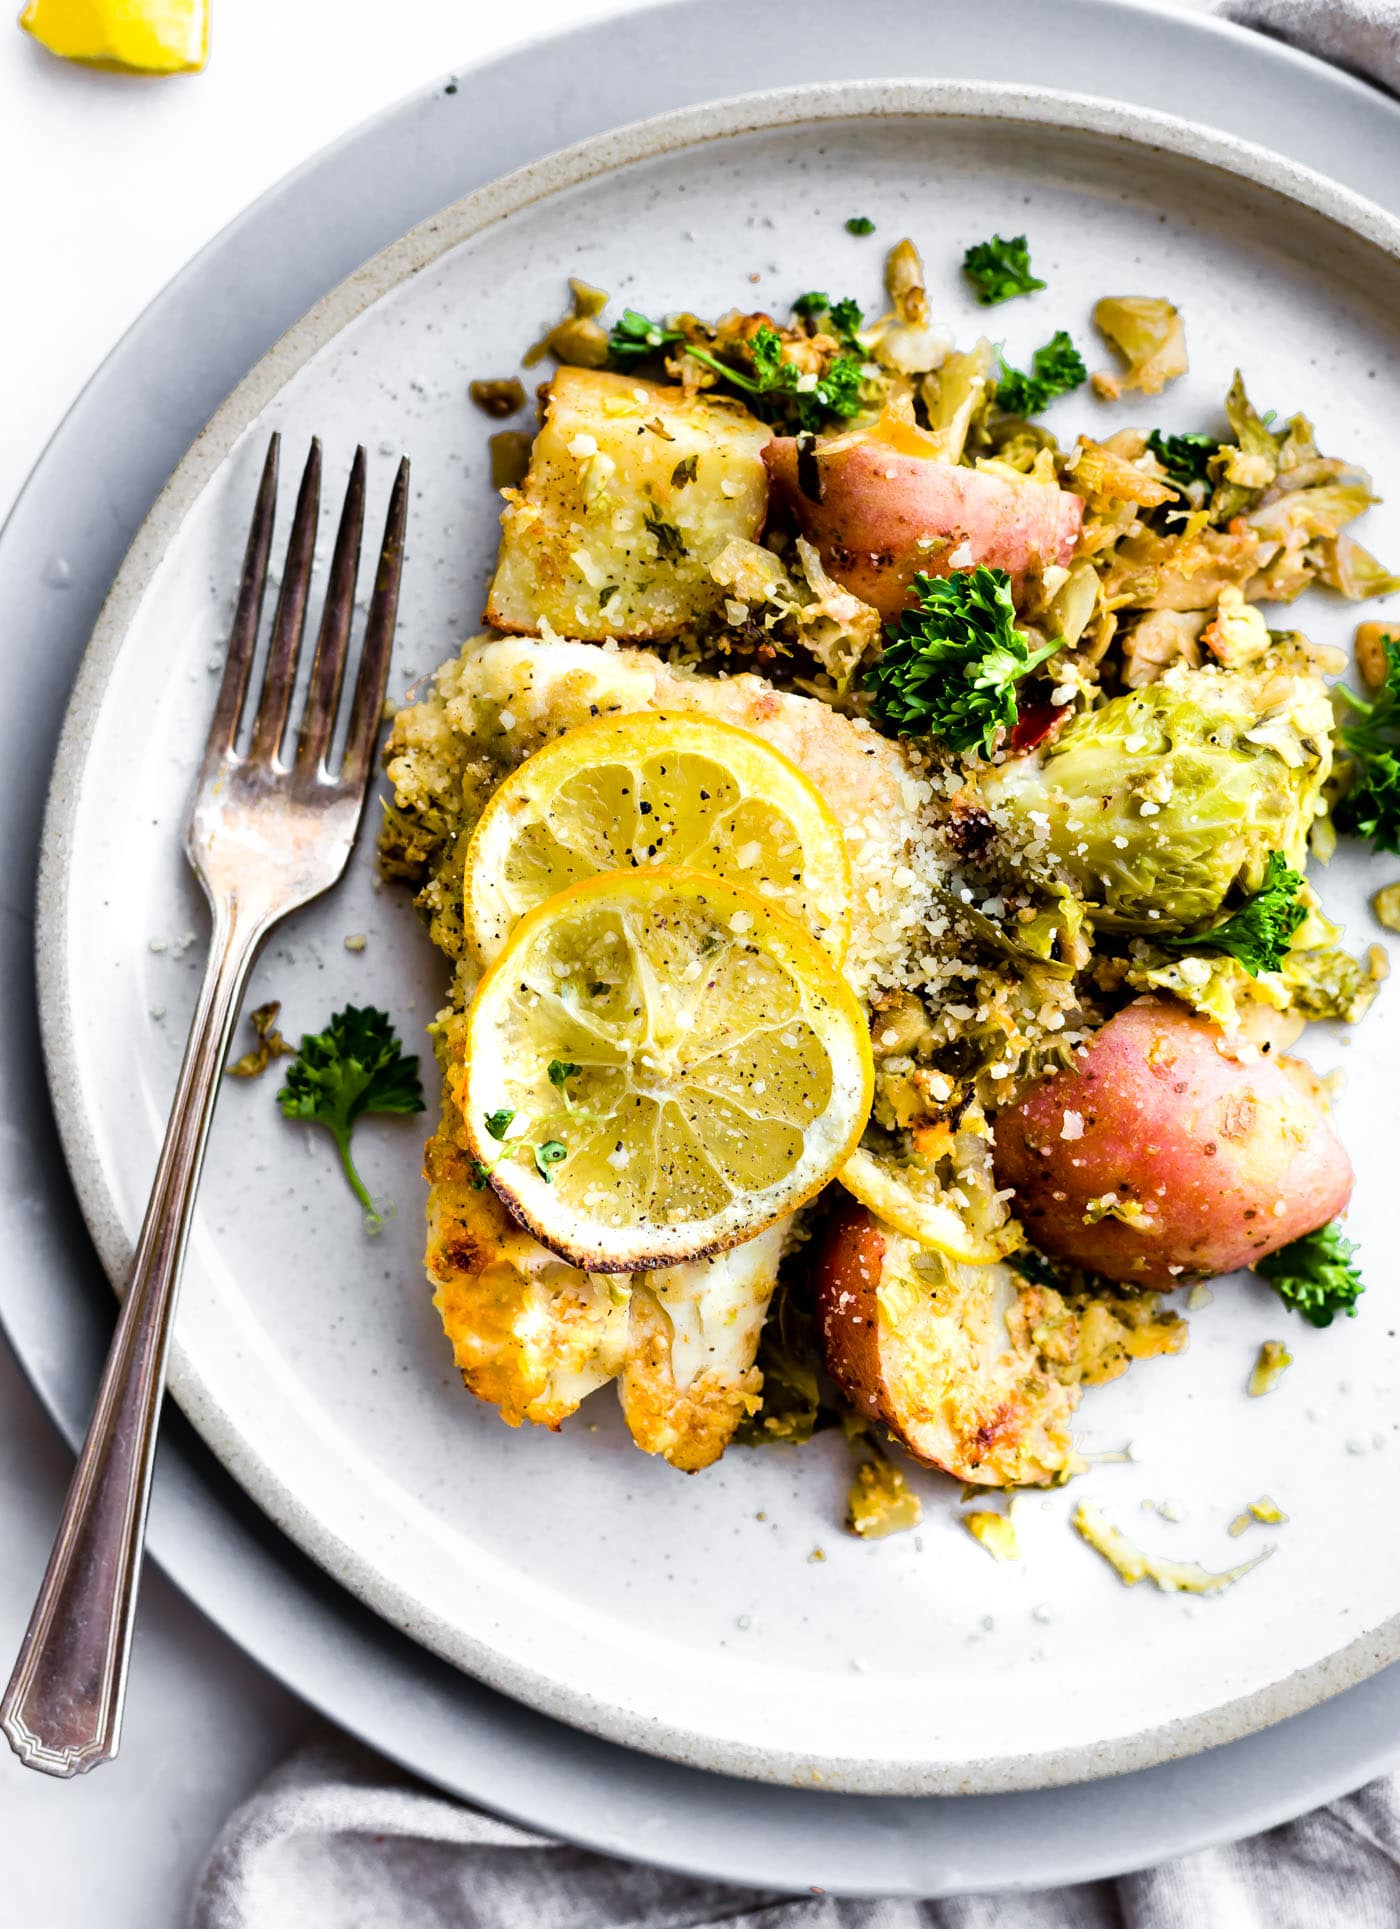 Honey mustard baked fish and vegetable recipe is a quick one pan meal ready in 30 minutes! A complete meal with healthy, lightfish, then baked with wholesome vegetables. Yes, even non fish lovers like it! And all it takes is just a few simple real food ingredients. Promise! Get a healthy dinner on the table in no time ya'll! Paleo friendly.